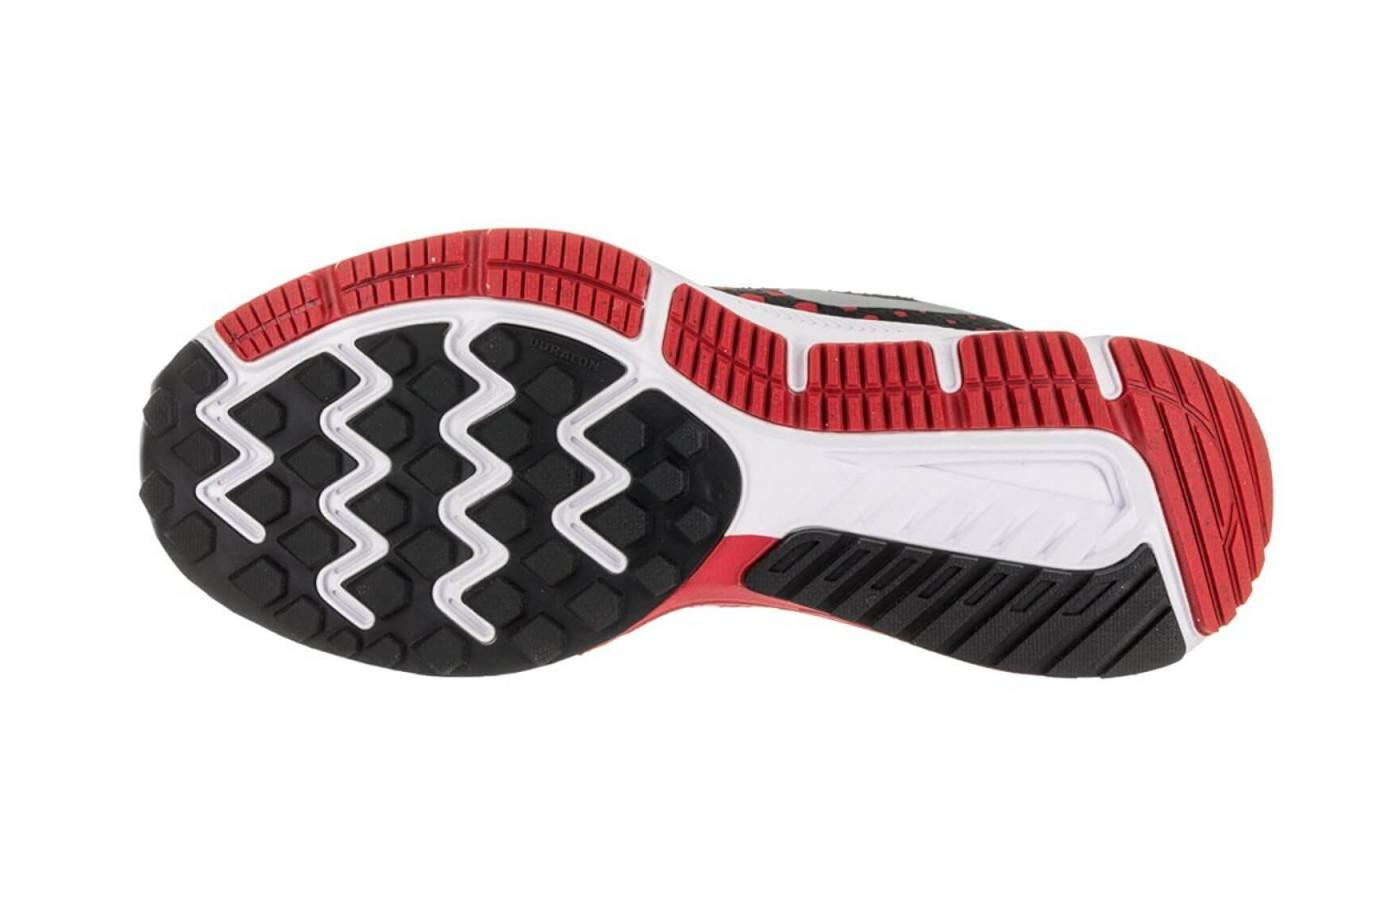 3f2ca3a414c8 The Air Zoom Span is a stylish shoe  The waffle technology and Durlaon  blown rubber are shown here ...